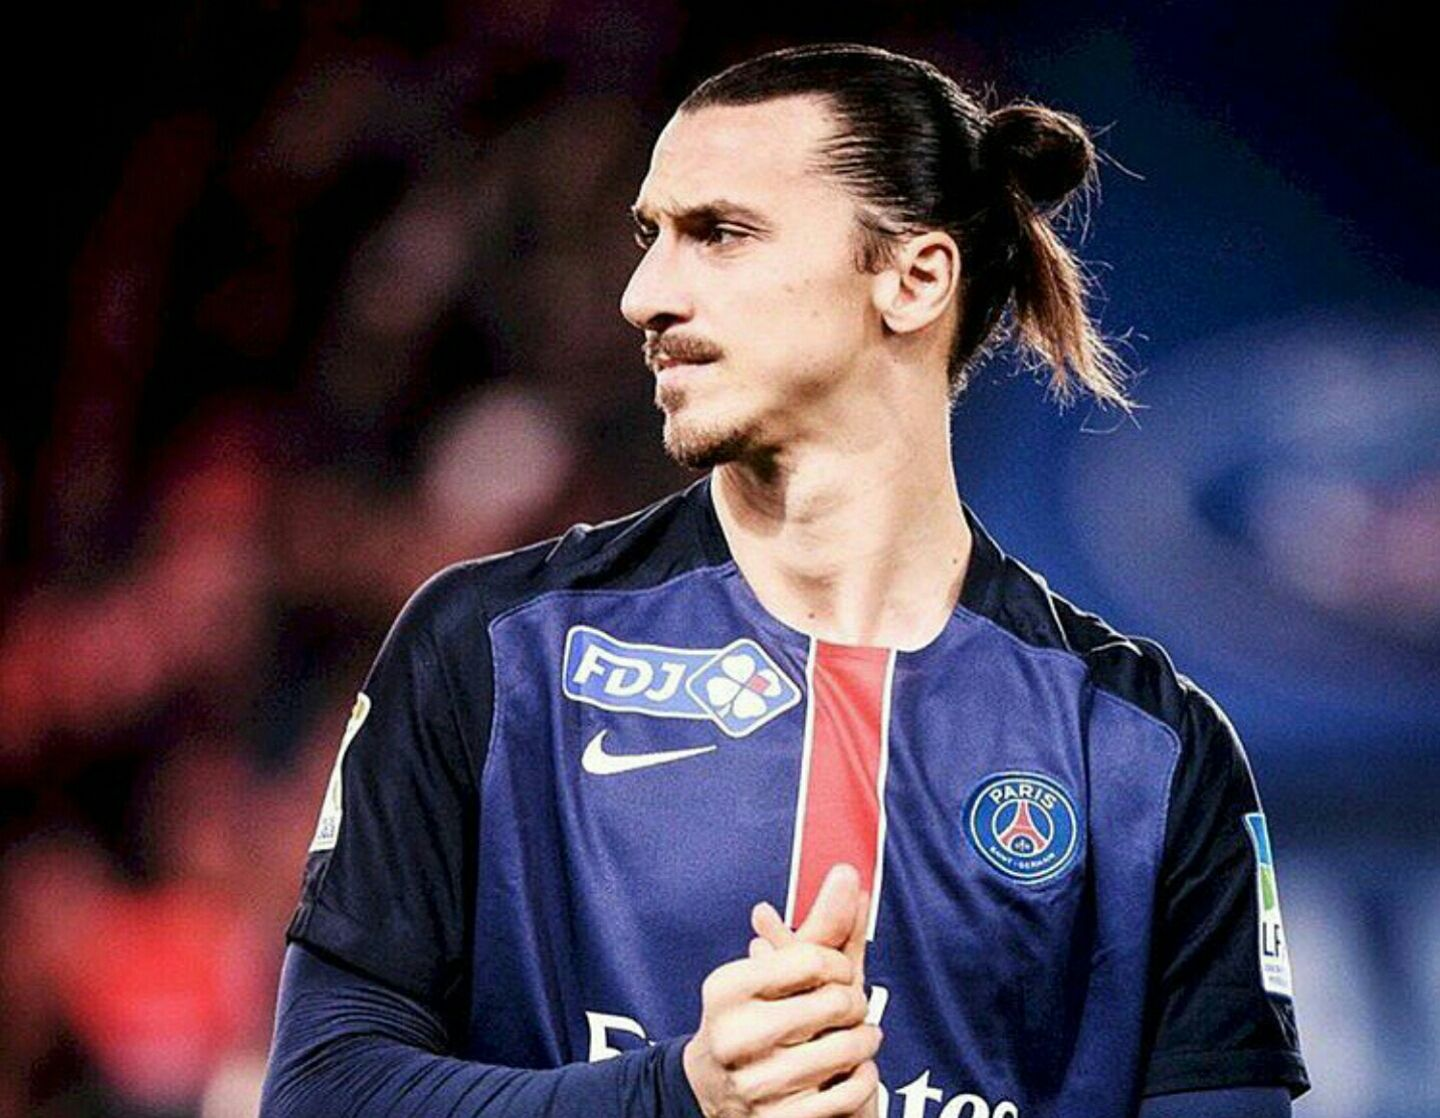 Daniel Riolo attend beaucoup de Zlatan Ibrahimovic. Fussball